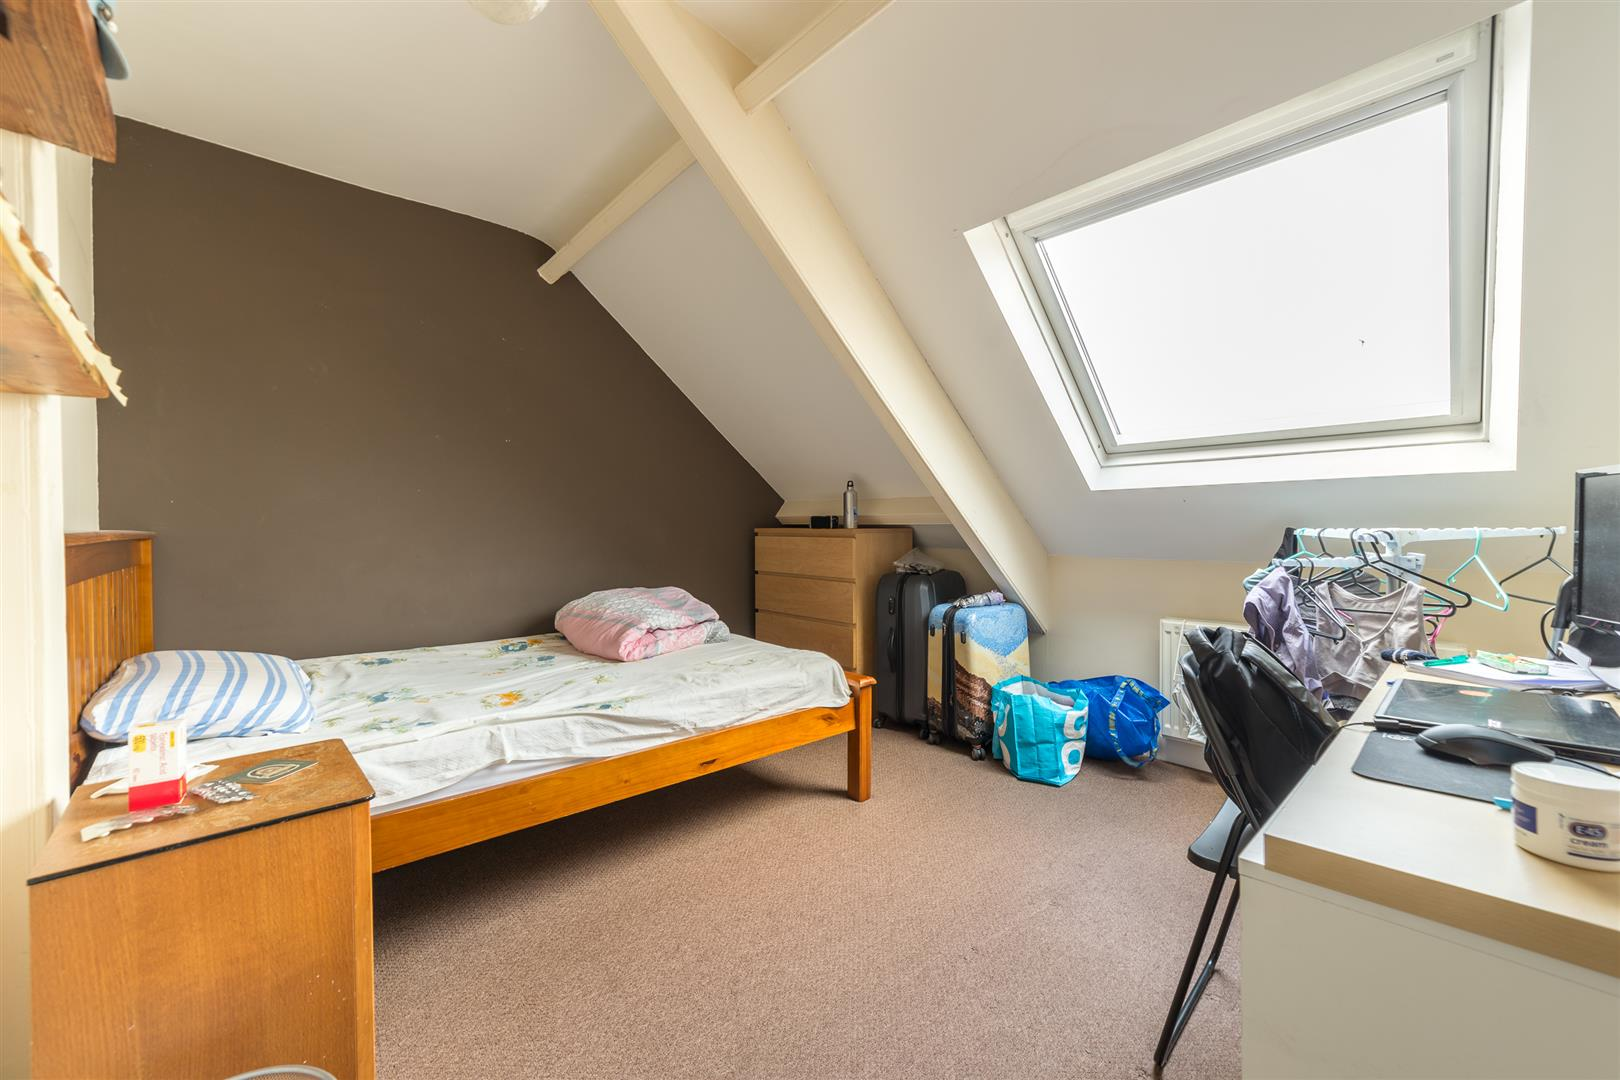 5 bed terraced house to rent in Newcastle Upon Tyne, NE4 5NL  - Property Image 17